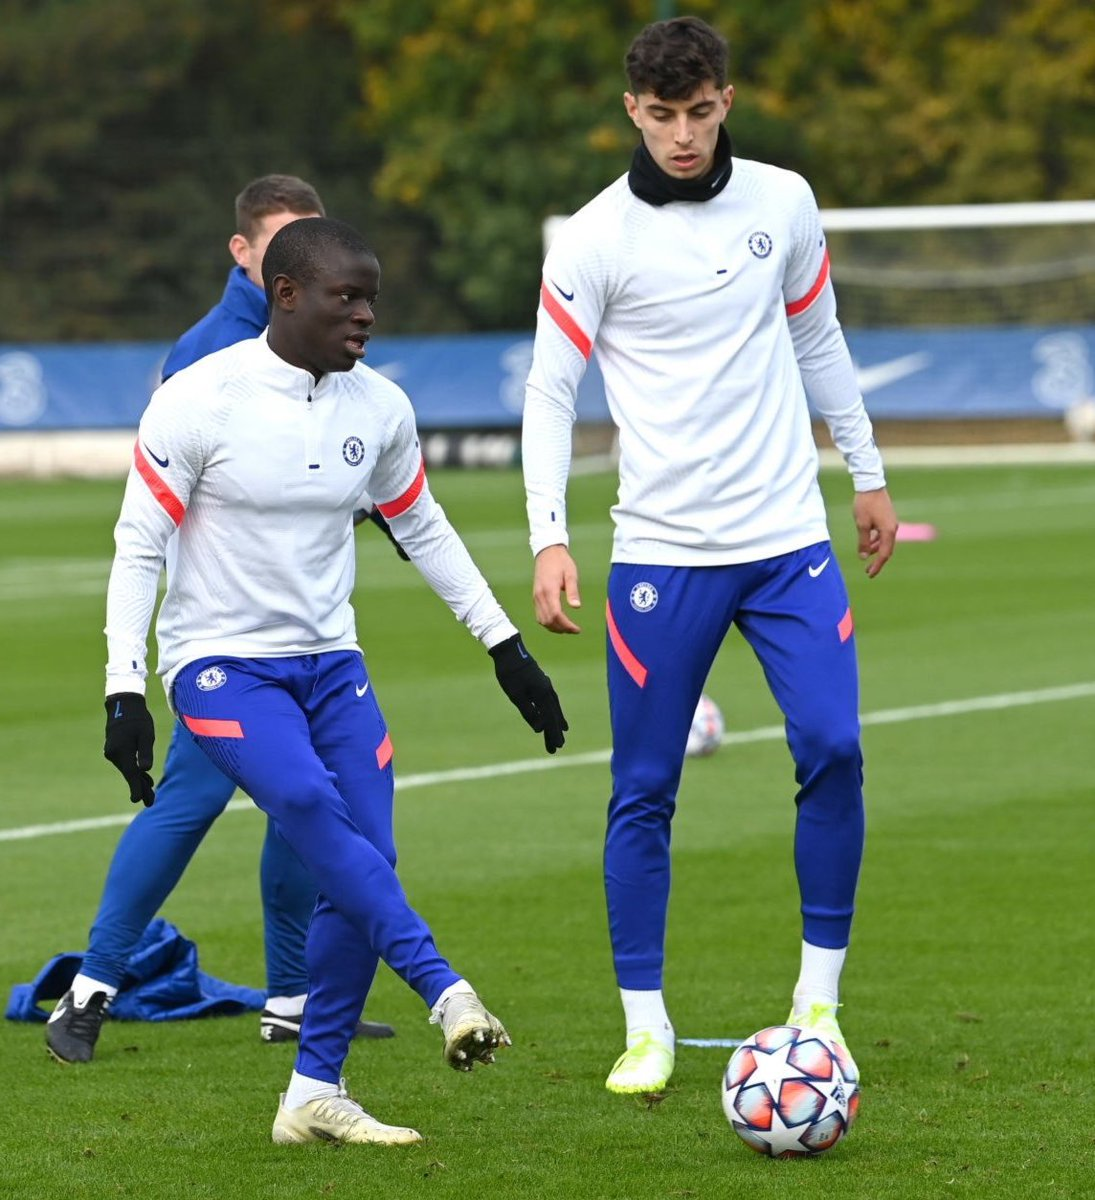 Kante x Havertz  Baller x King   #CFC #UCL https://t.co/TkJdwJnPgr